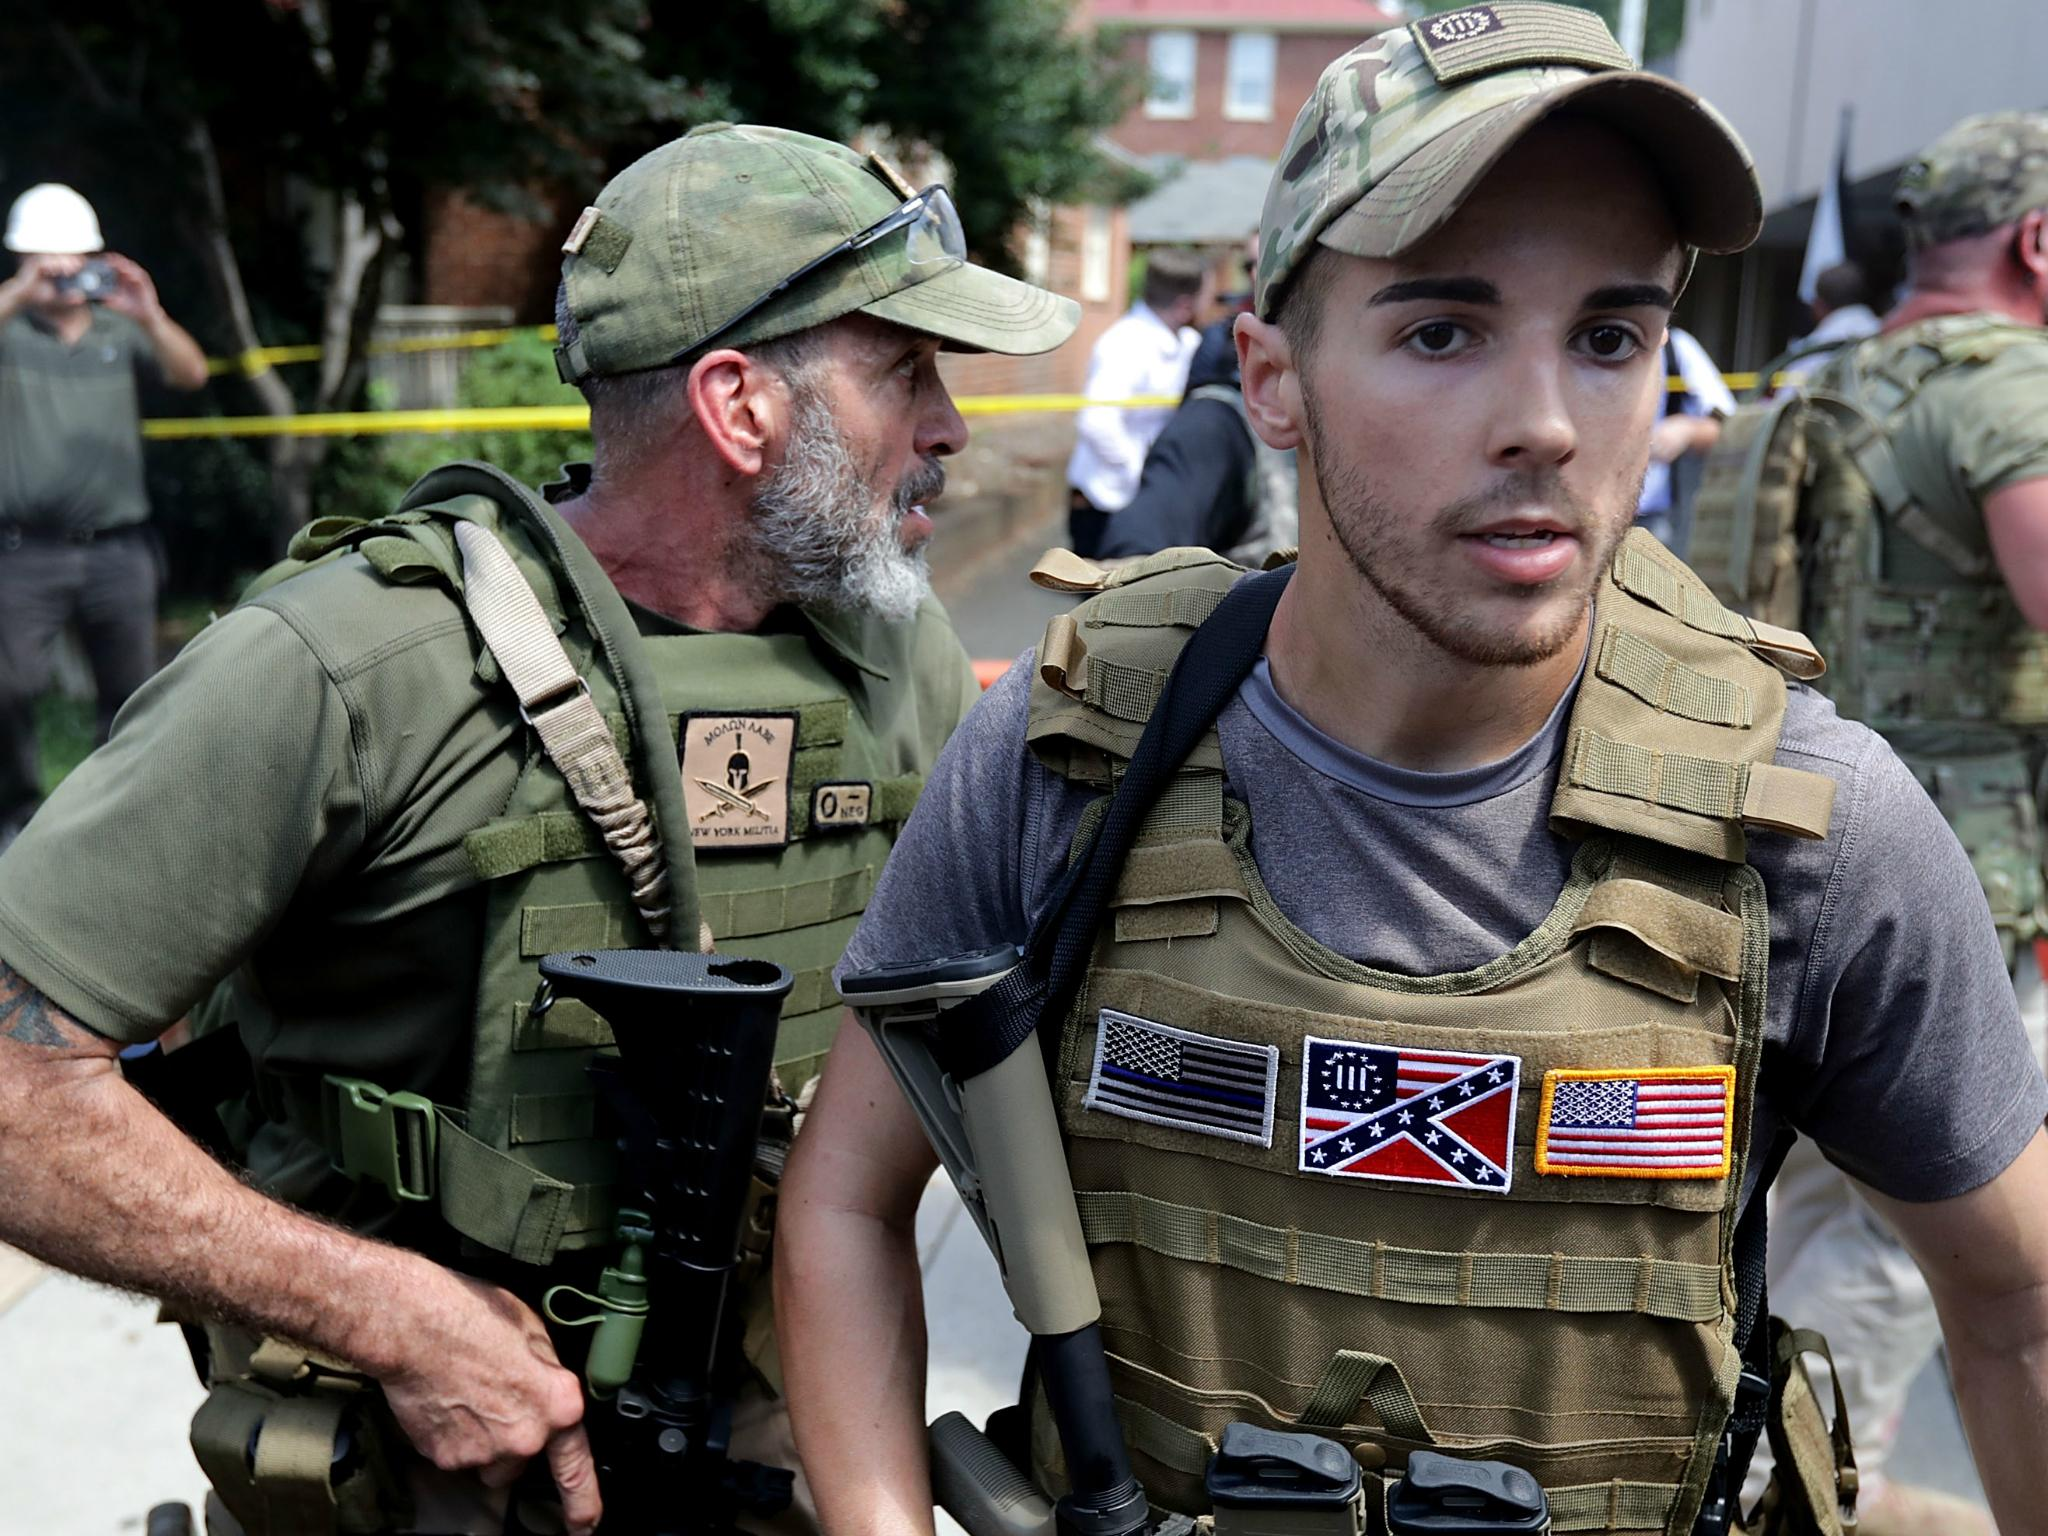 Militia armed with assault rifles